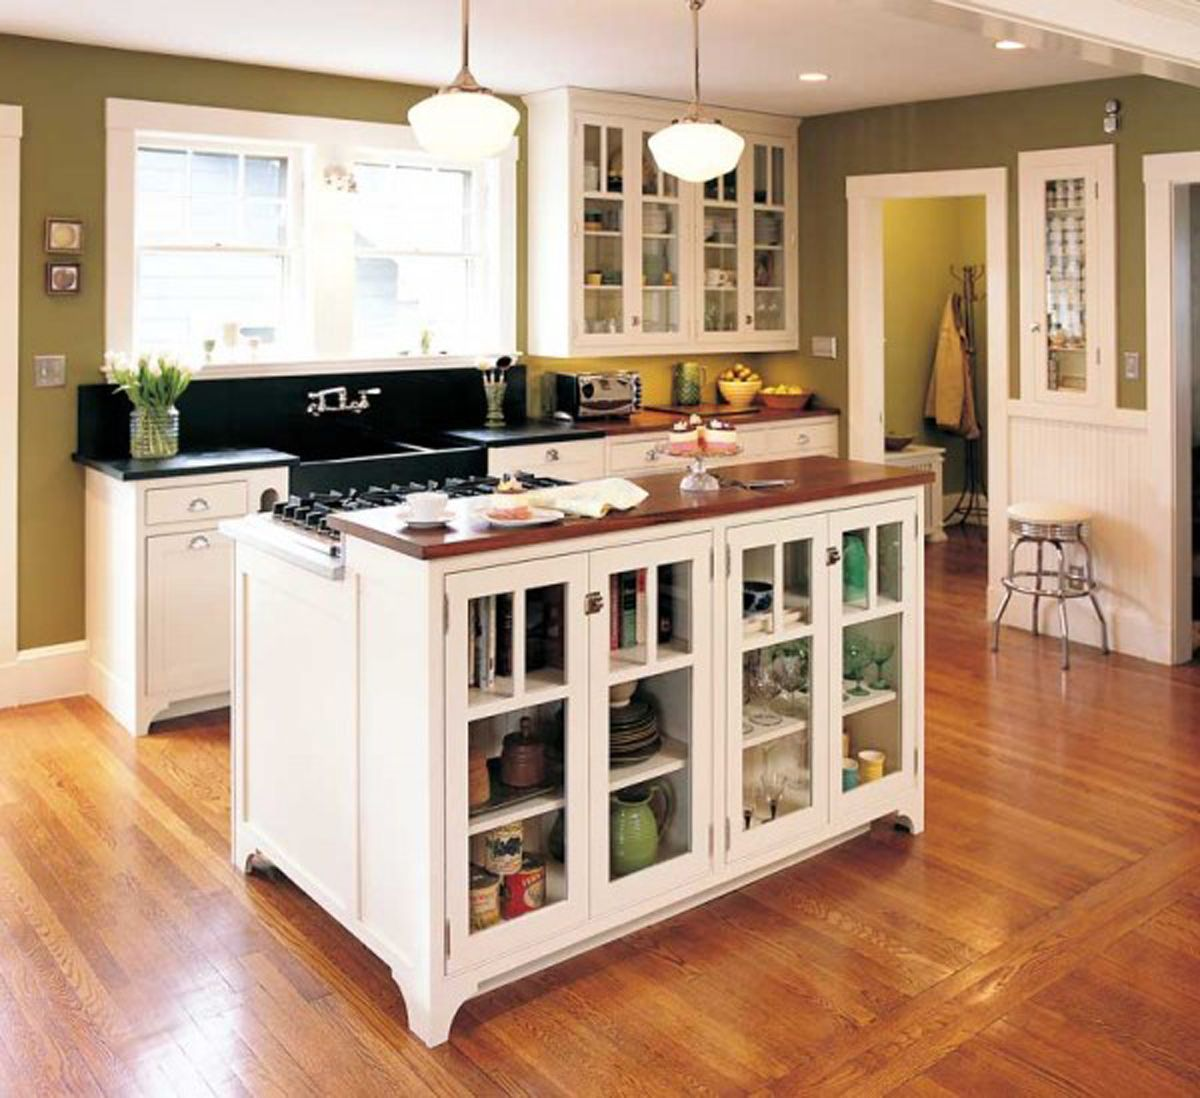 Best Galley Kitchen Design Ideas   Http://decor.aitherslight.com/